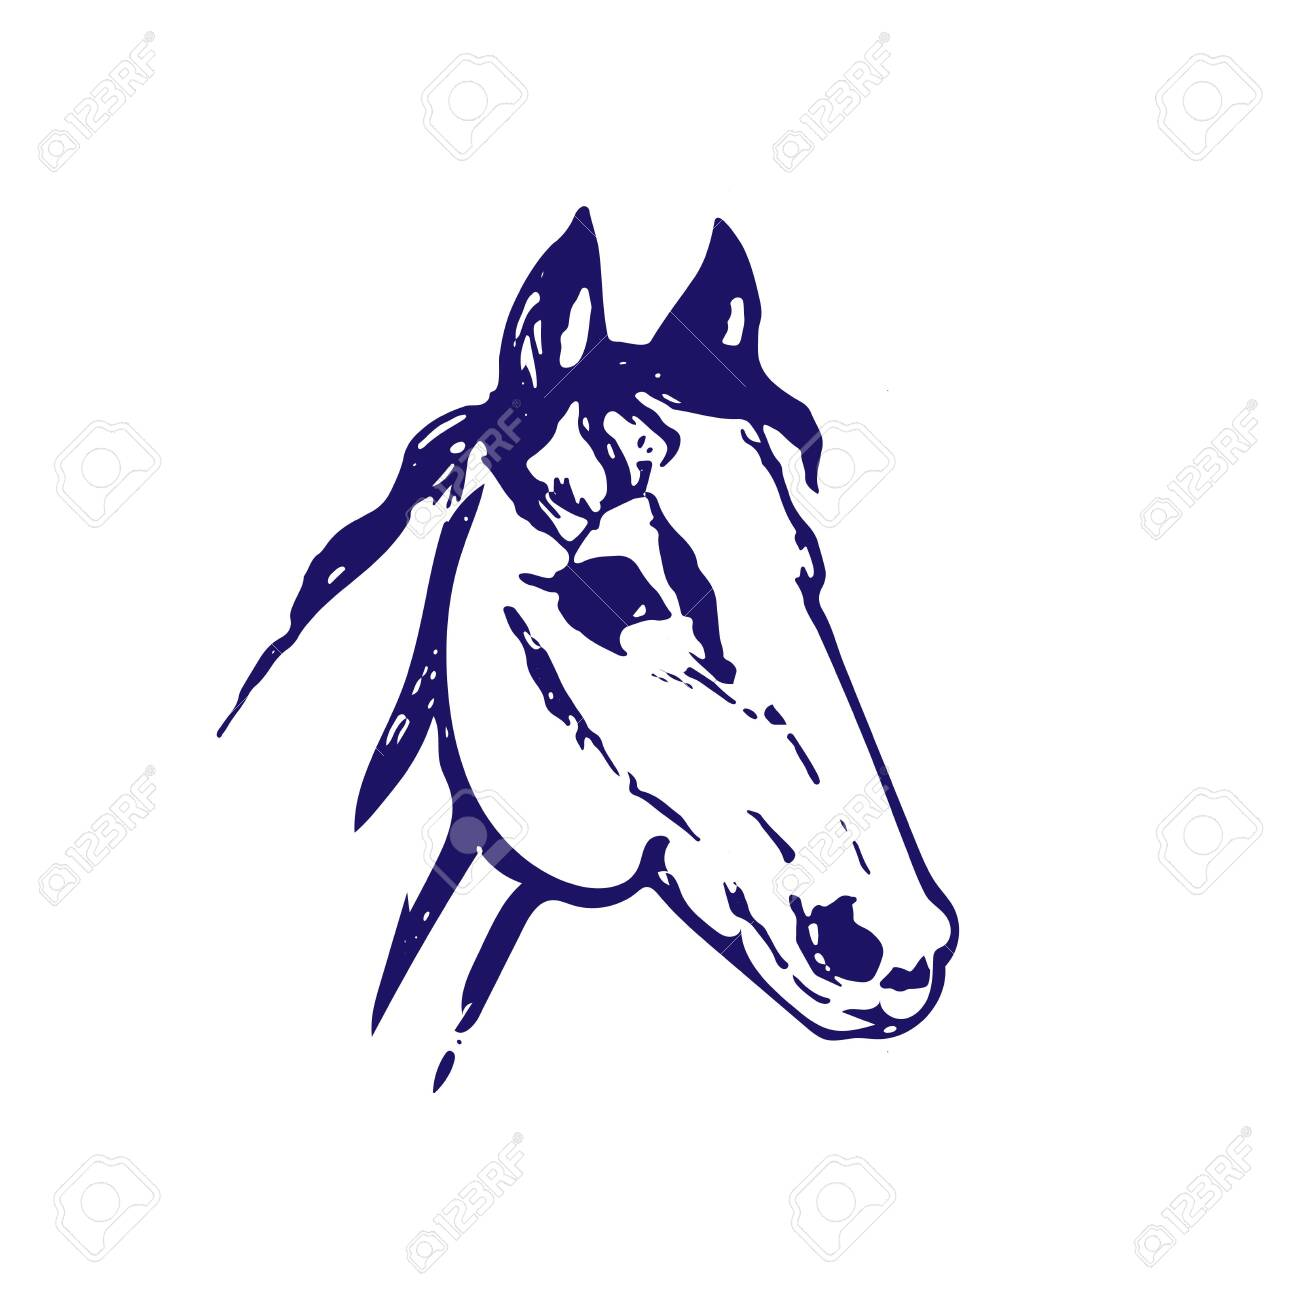 Hand Drawn Sketch Of Horse Head Bllue Ink Line Drawing Isolated Royalty Free Cliparts Vectors And Stock Illustration Image 123938214